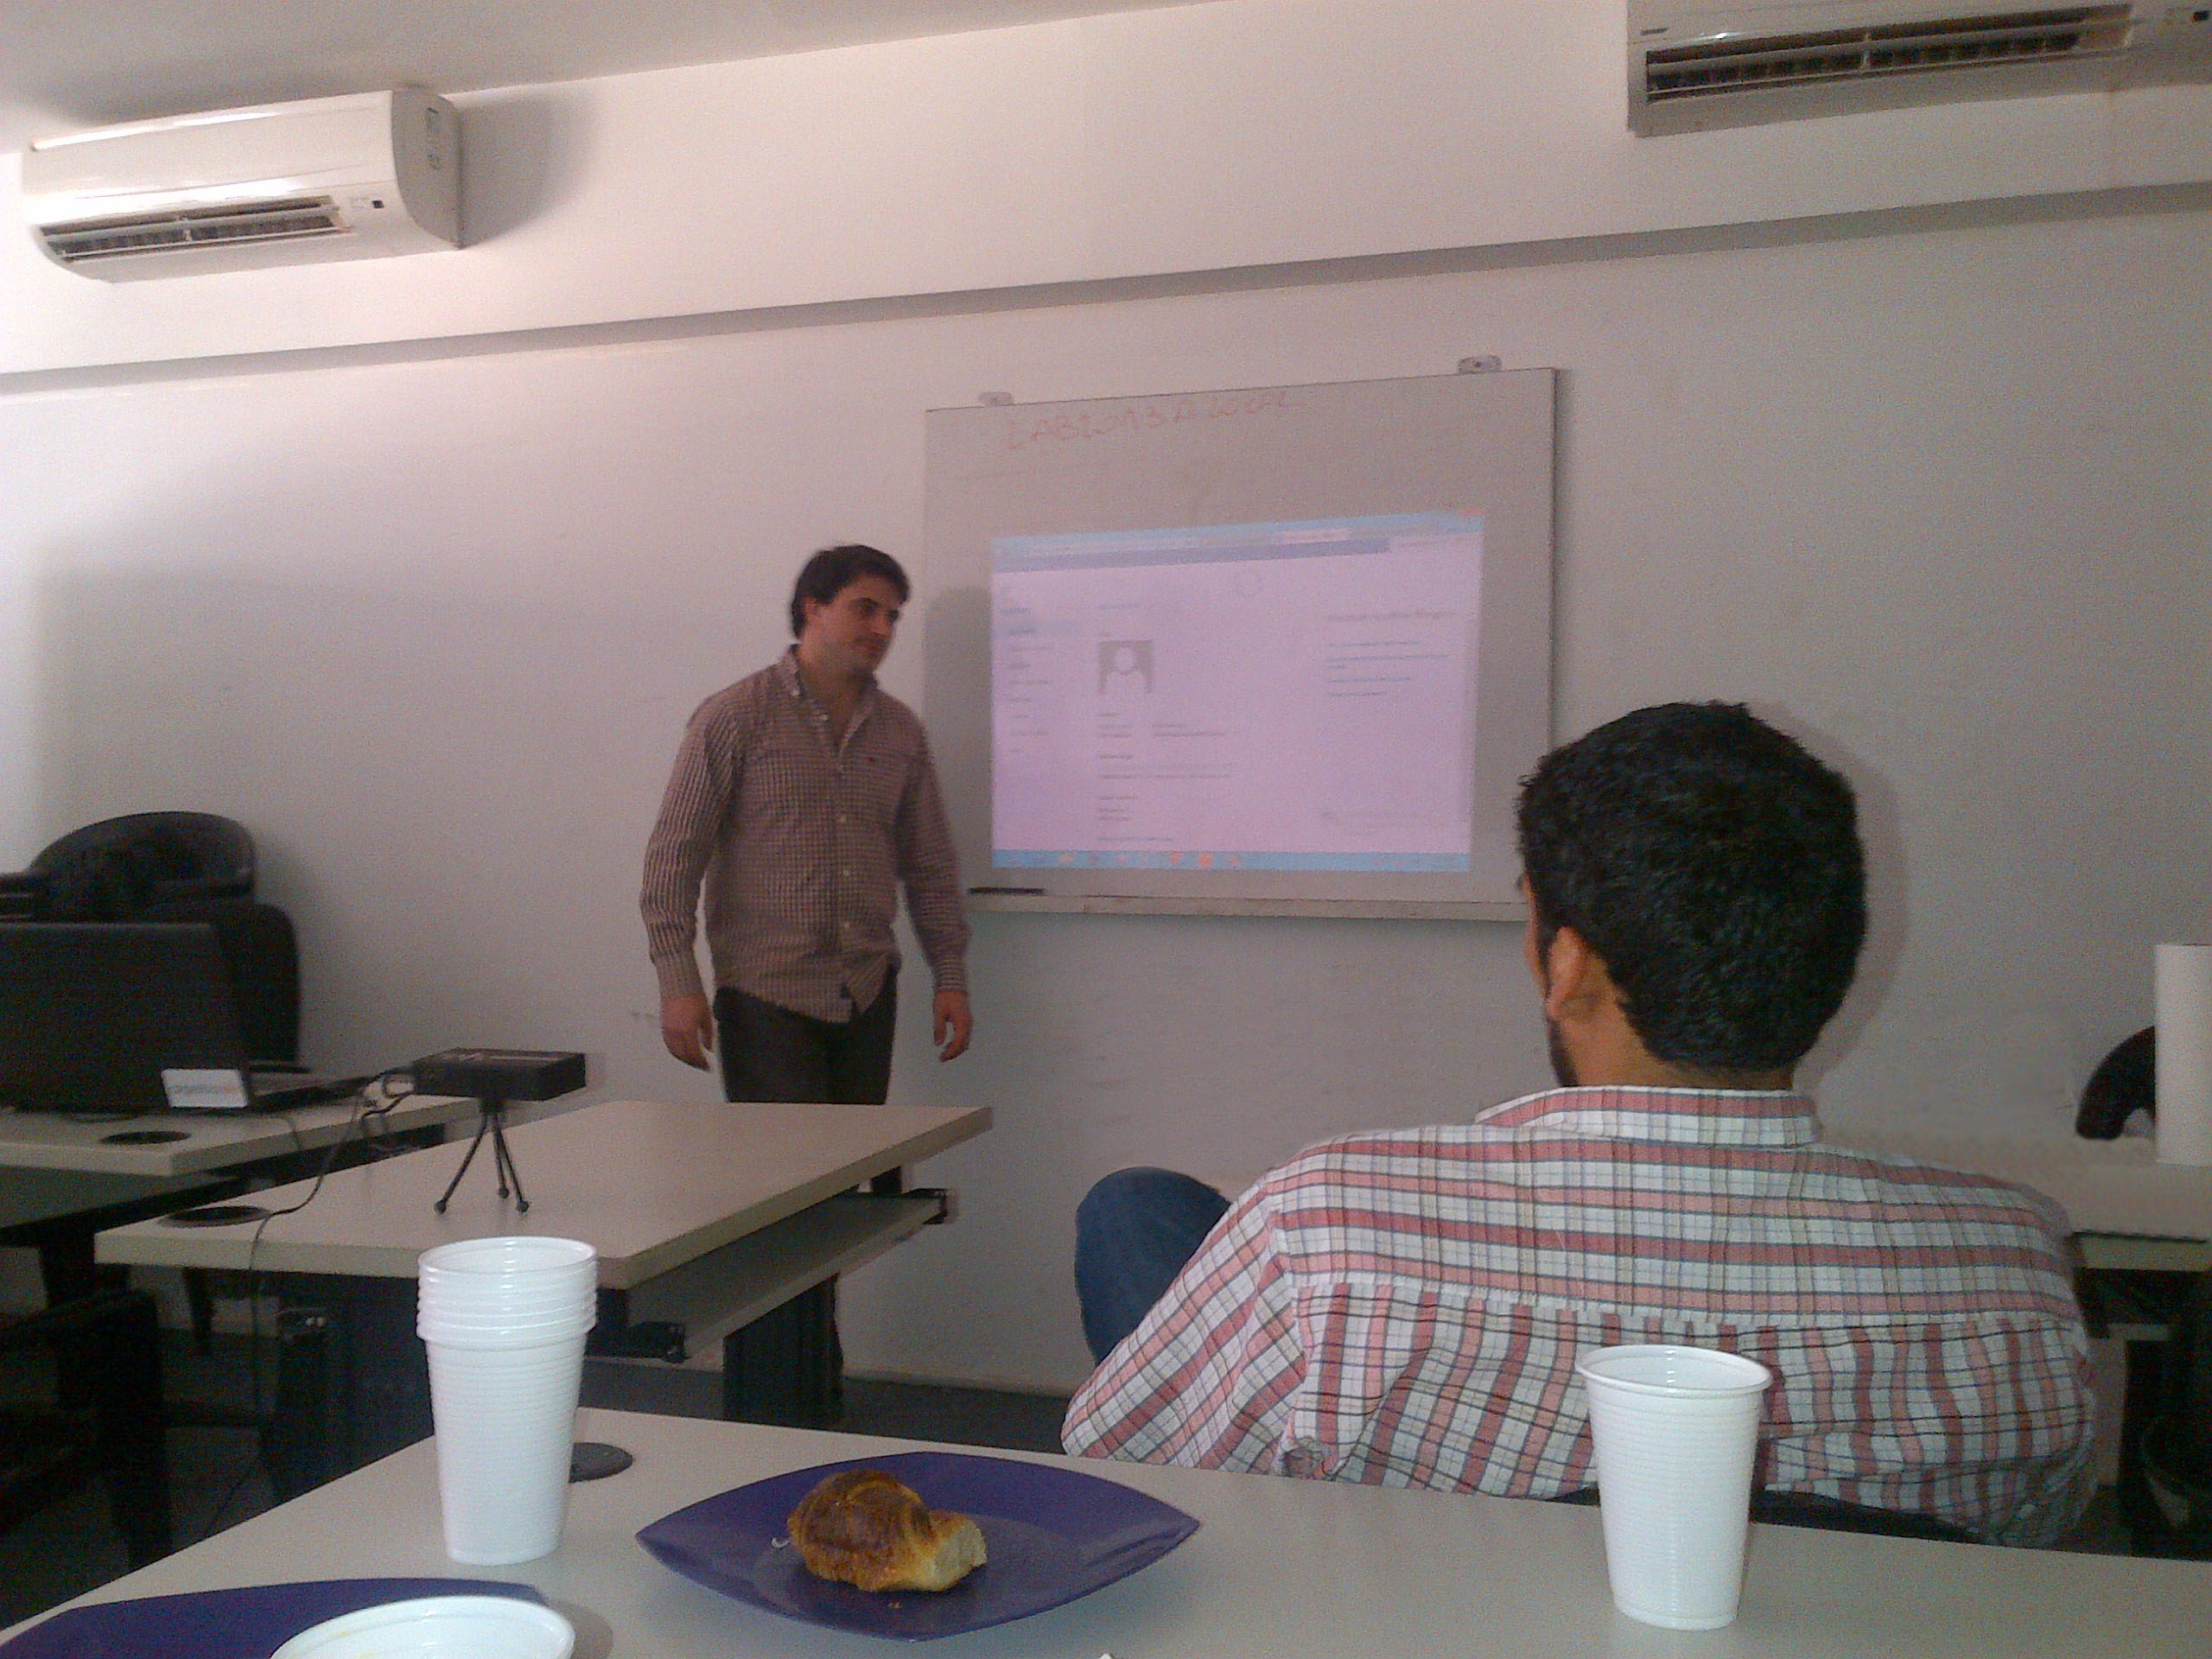 En pleno evento de Exchange Server 2013.